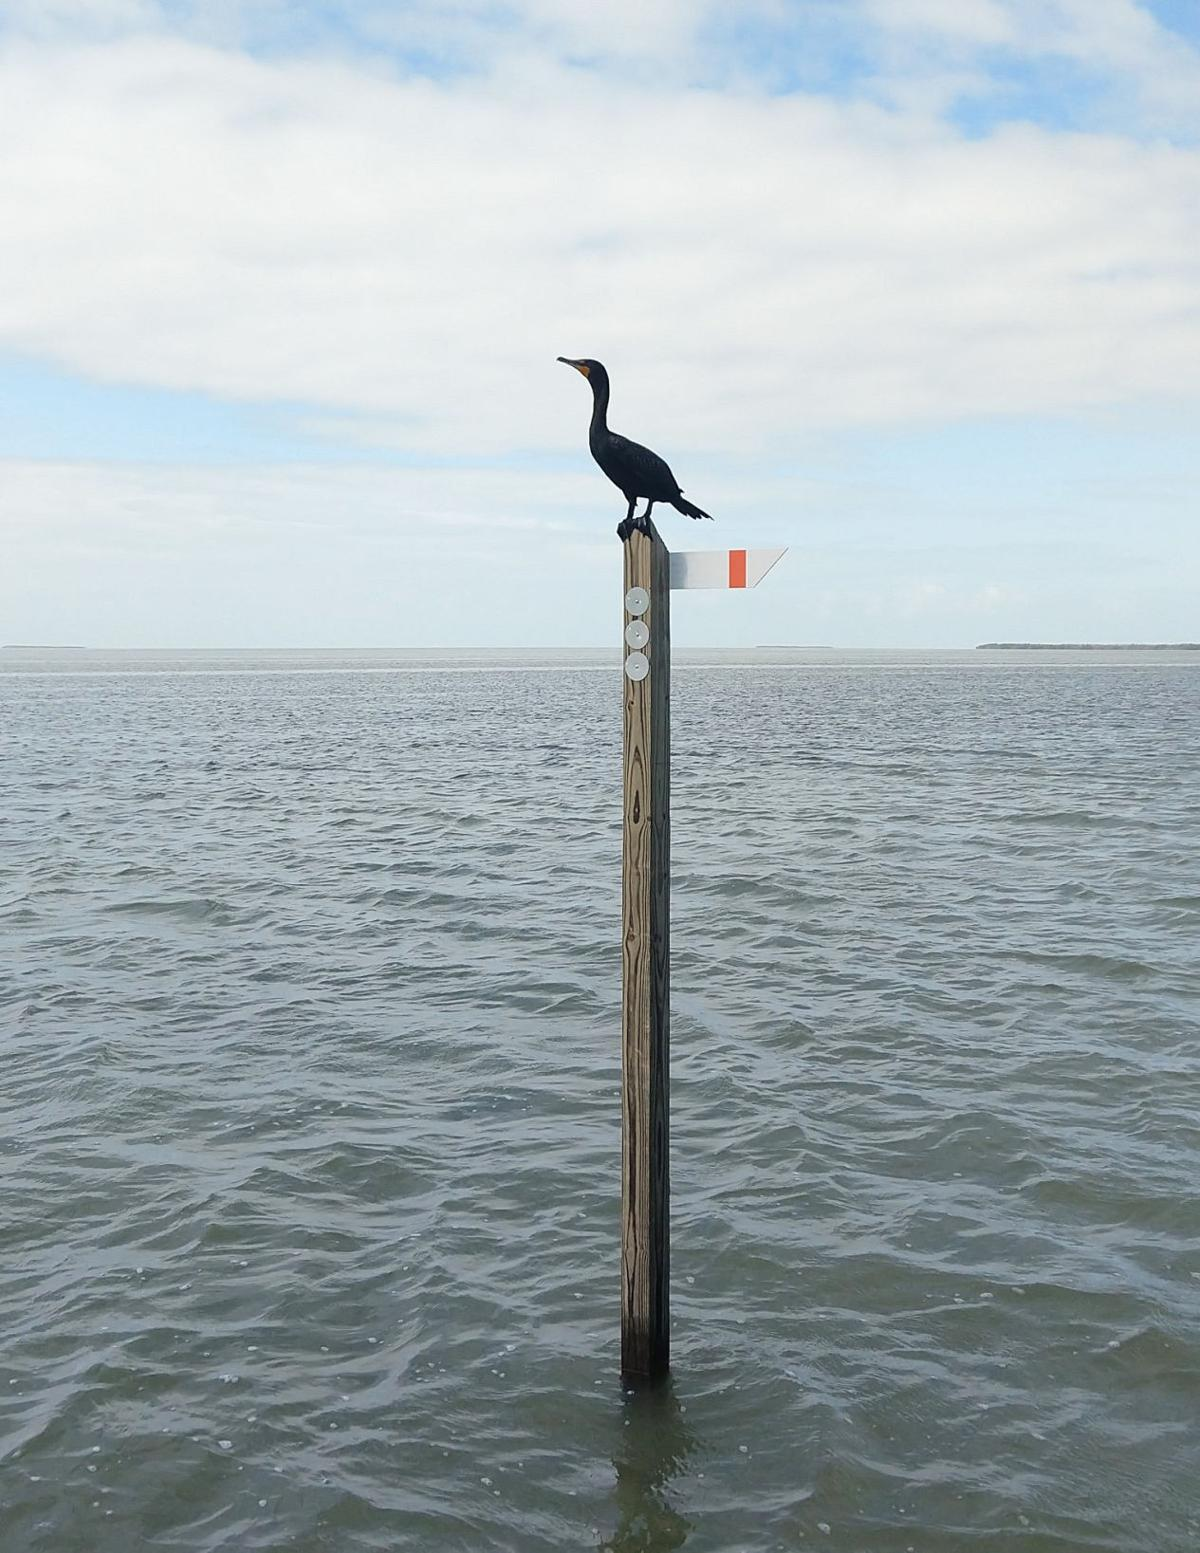 Channel markers such as these help guide boaters through Florida Bay. This channel marker is serving a dual purpose as a resting spot for a cormorant. NPS photo